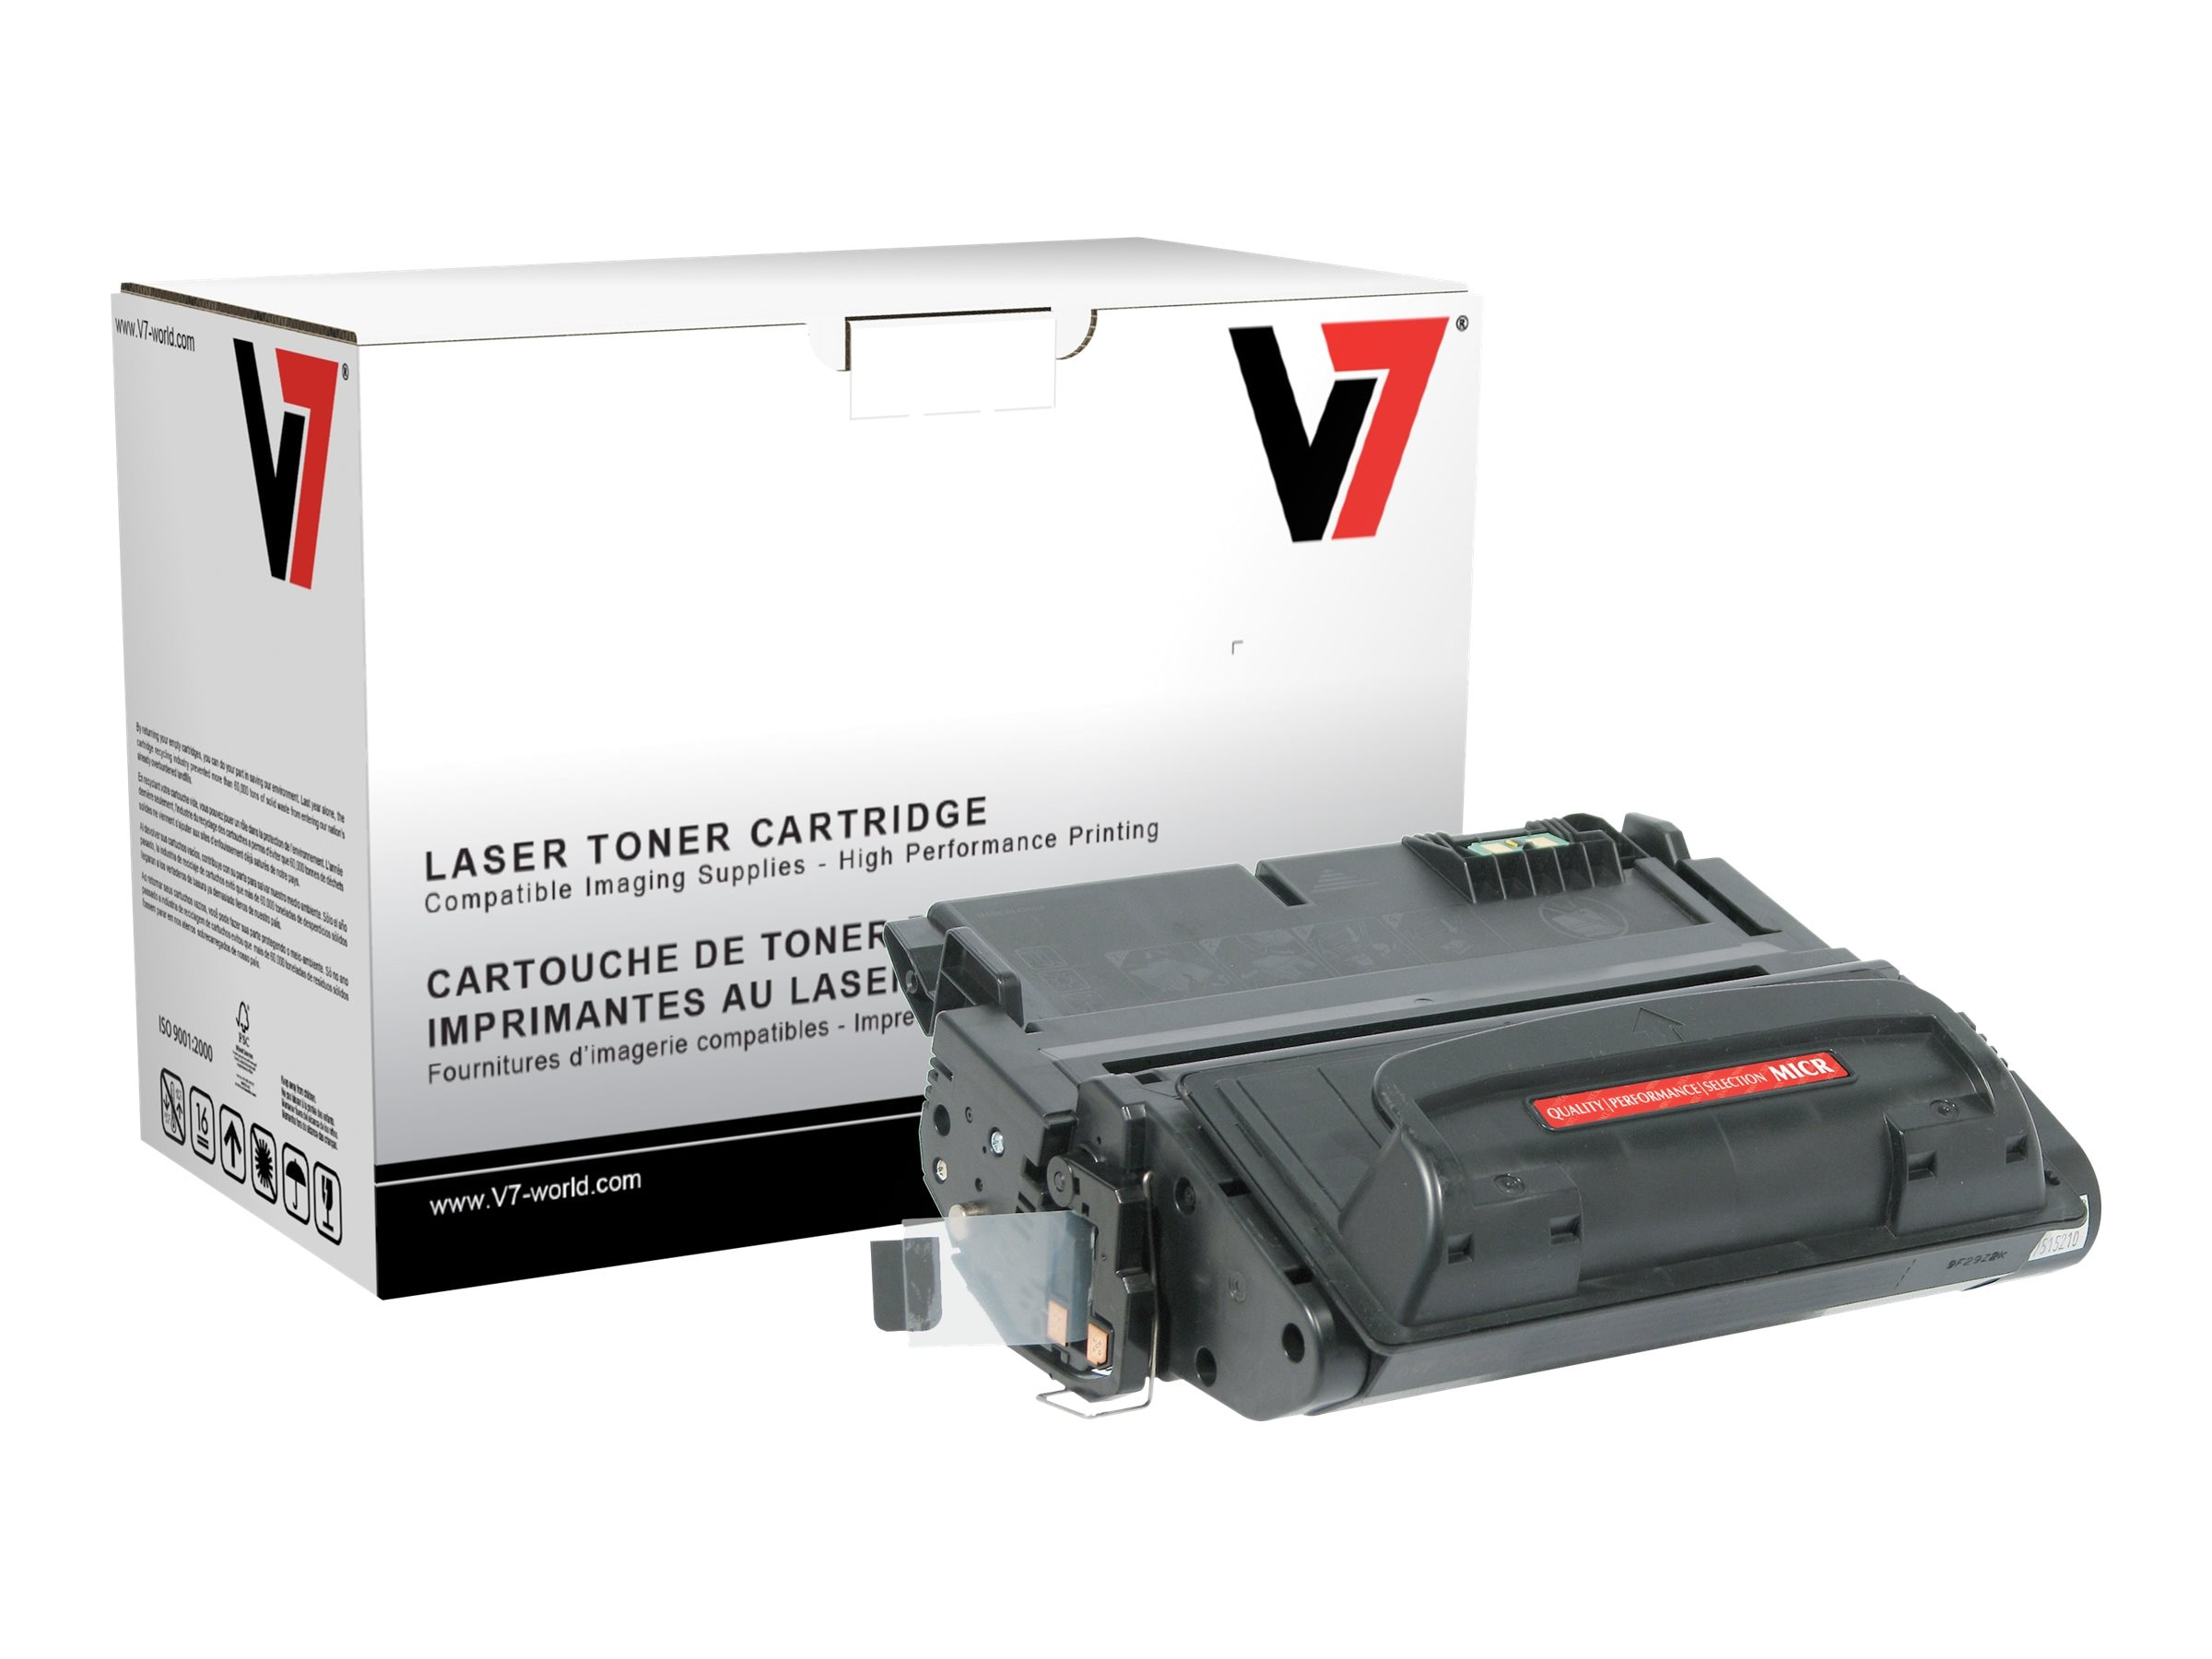 V7 Q5942A MICR Black Toner Cartridge for HP LaserJet 4240 (TAA Compliant), THK25942AM